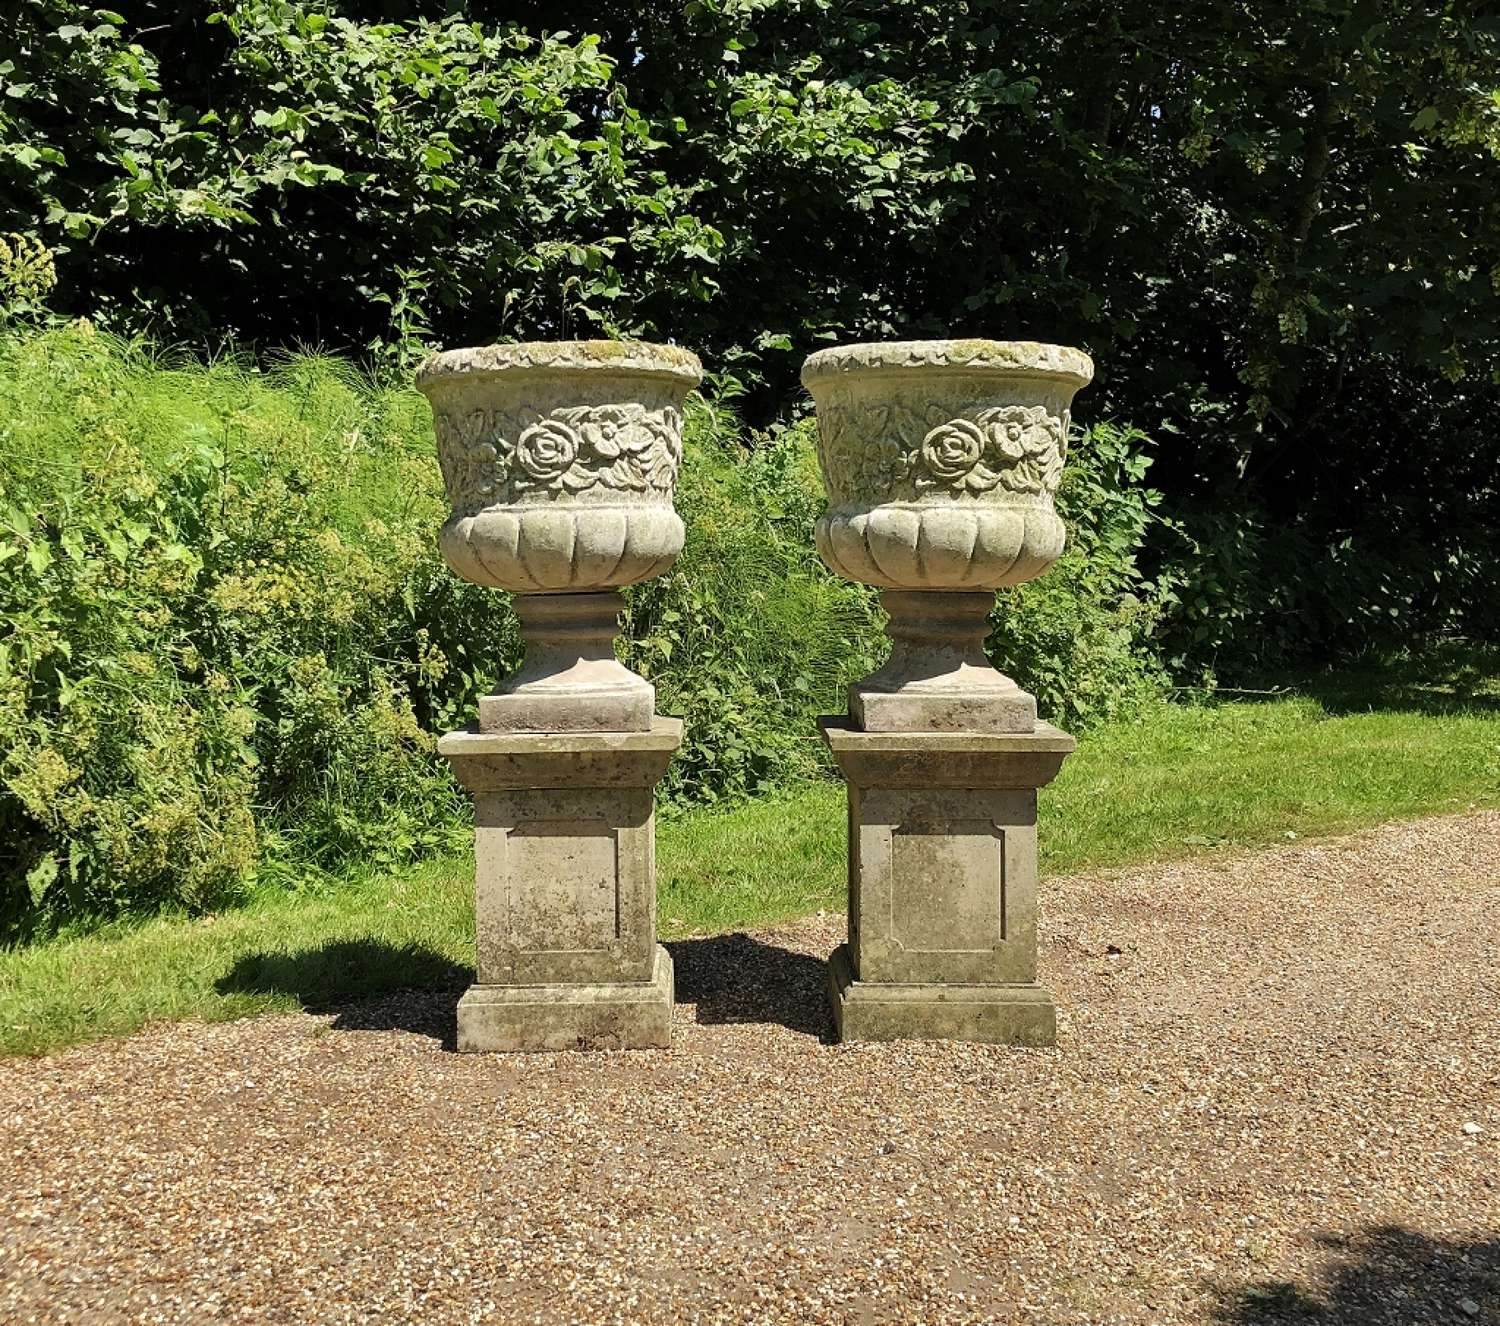 Pair of Large Flower Urns with Pedestals